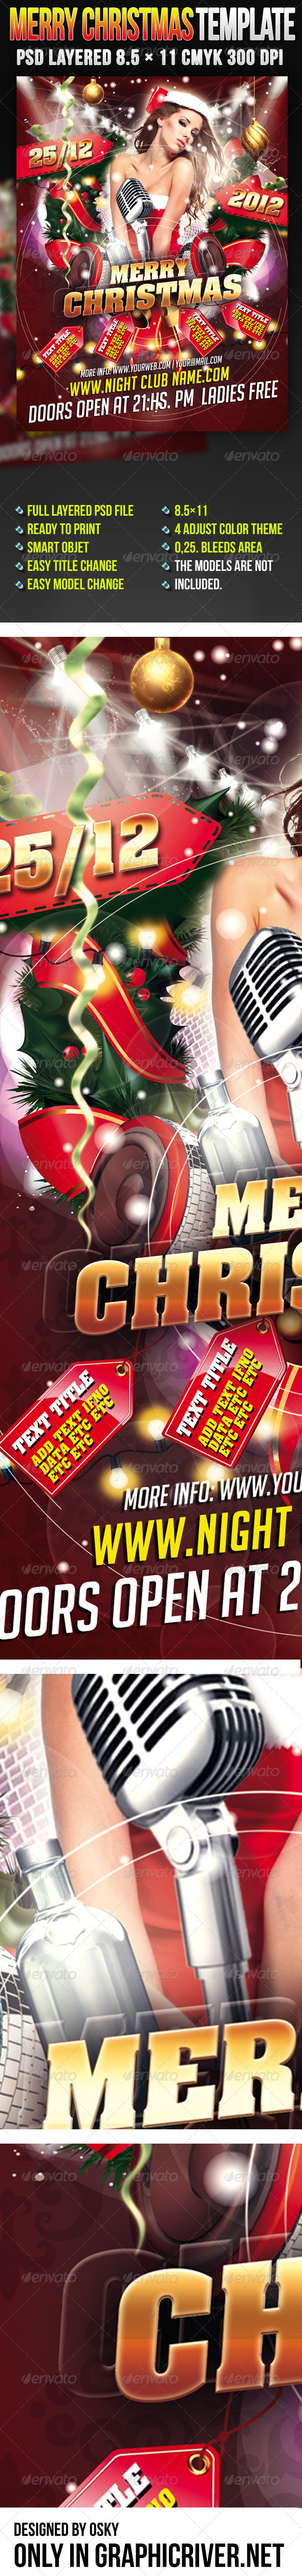 Merry Christmas Template - Clubs & Parties Events